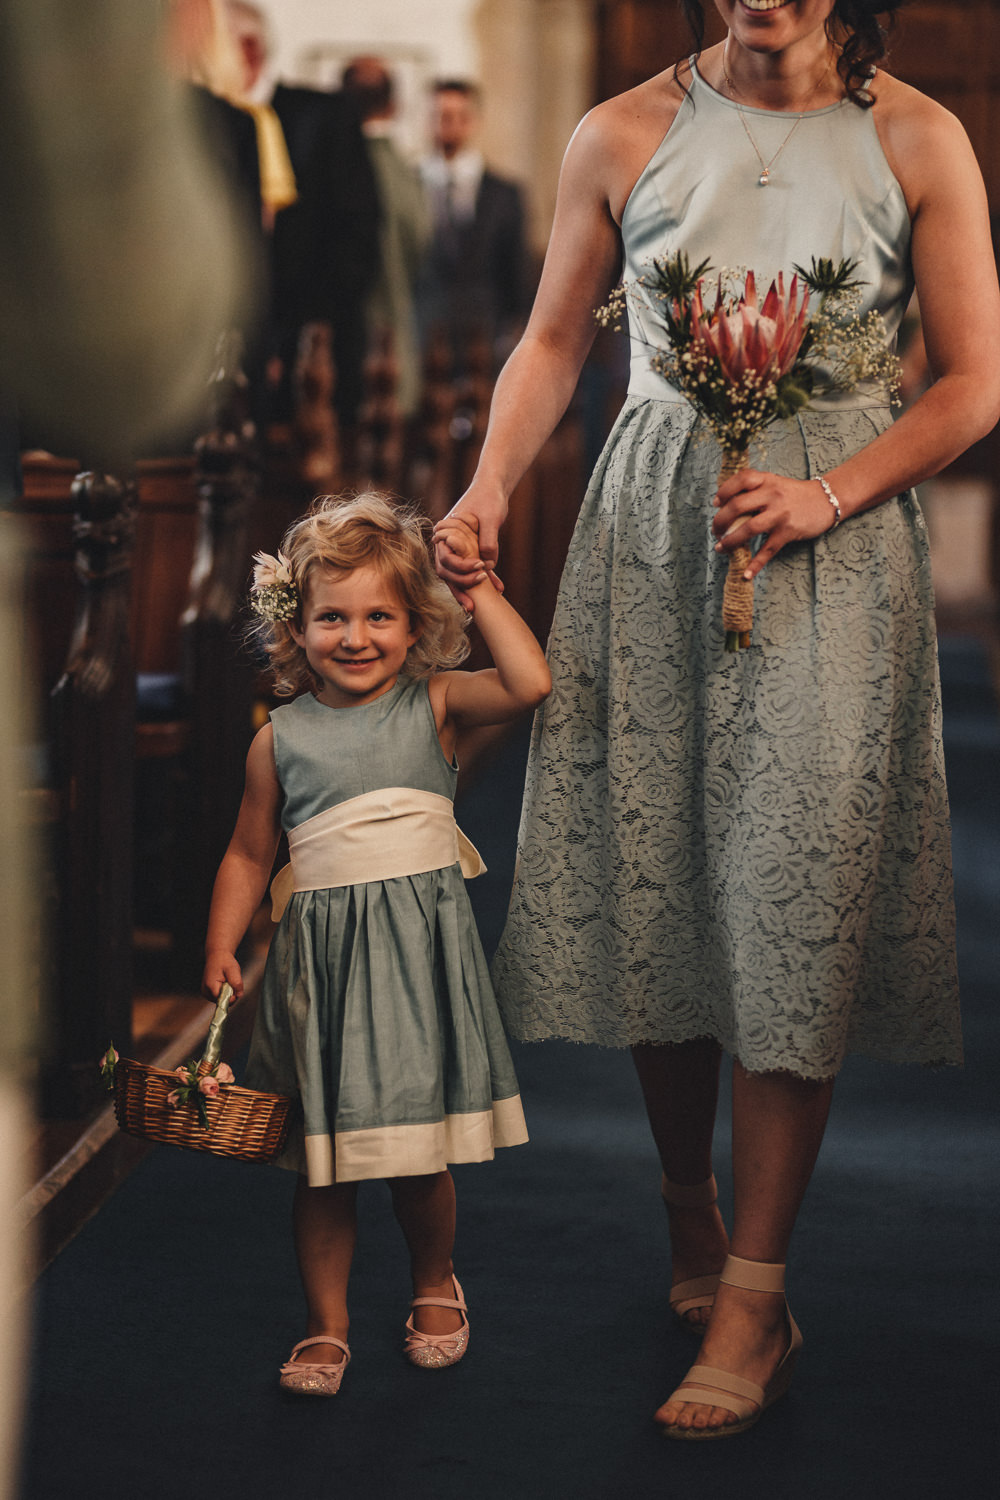 Bridesmaids Bridesmaid Dress Dresses Short Lace Sage Green Flower Girl Marquee Wedding Home The Chamberlins